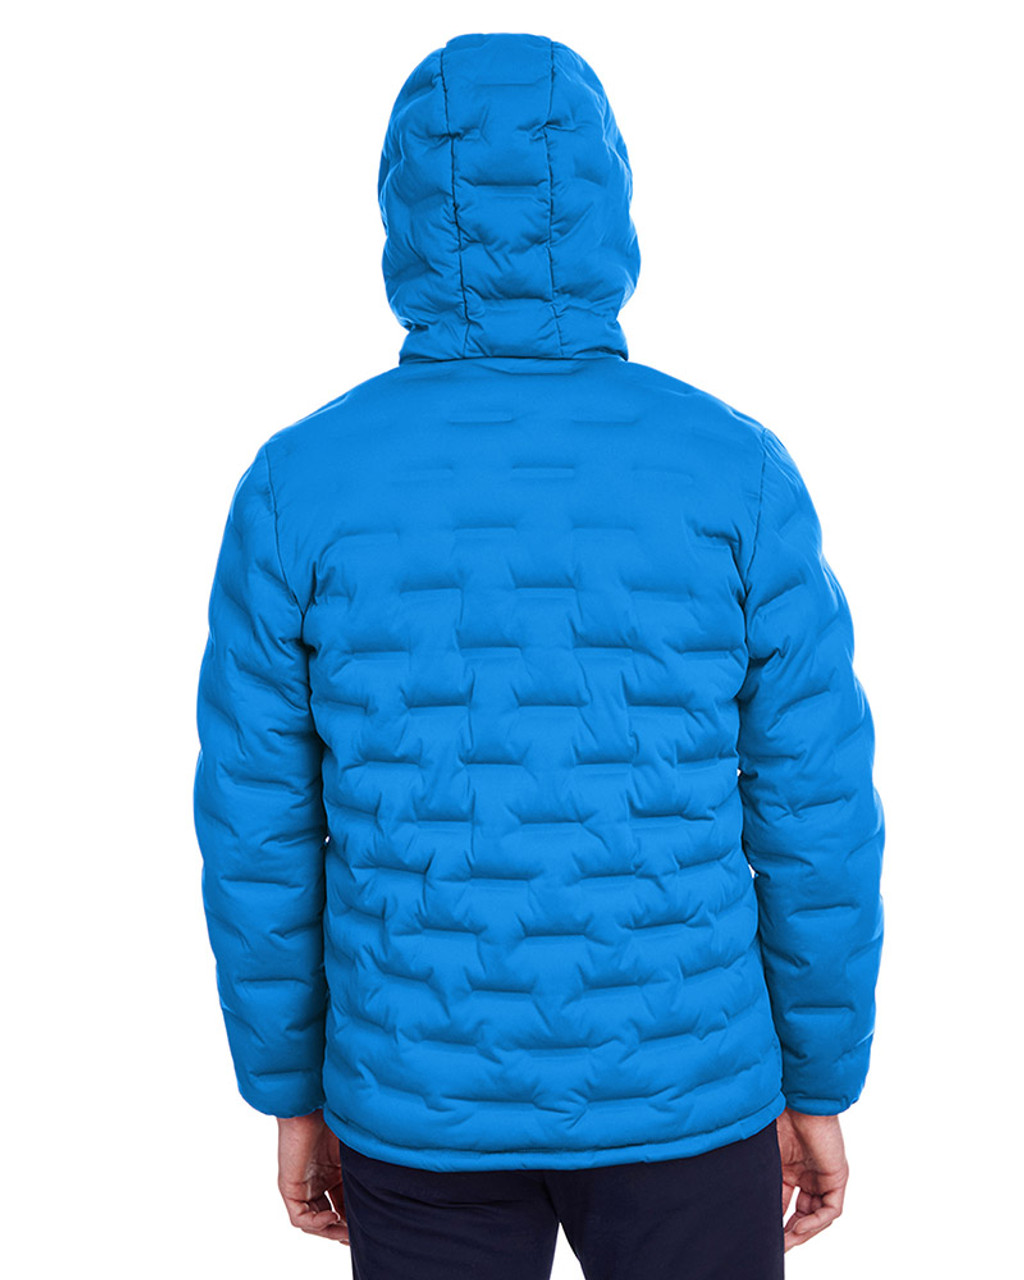 Olympic Blue/Carbon - back, NE708 North End Men's Loft Puffer Jacket | Blankclothing.ca